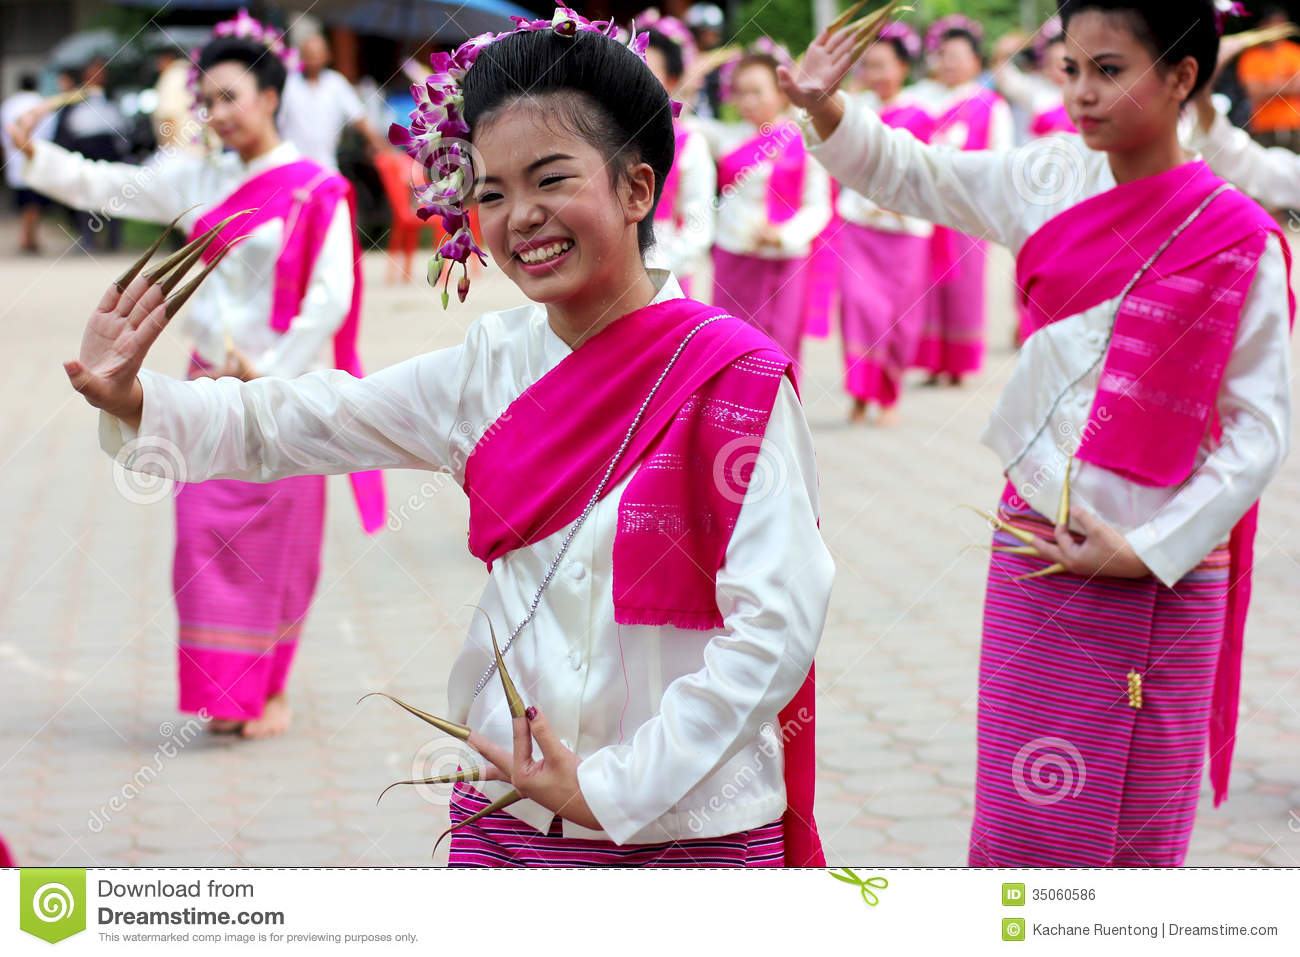 buddhist single women in melvin village There is no single way of said that when village people in india information of the oldest teachings of buddhism, such as on the four noble truths.